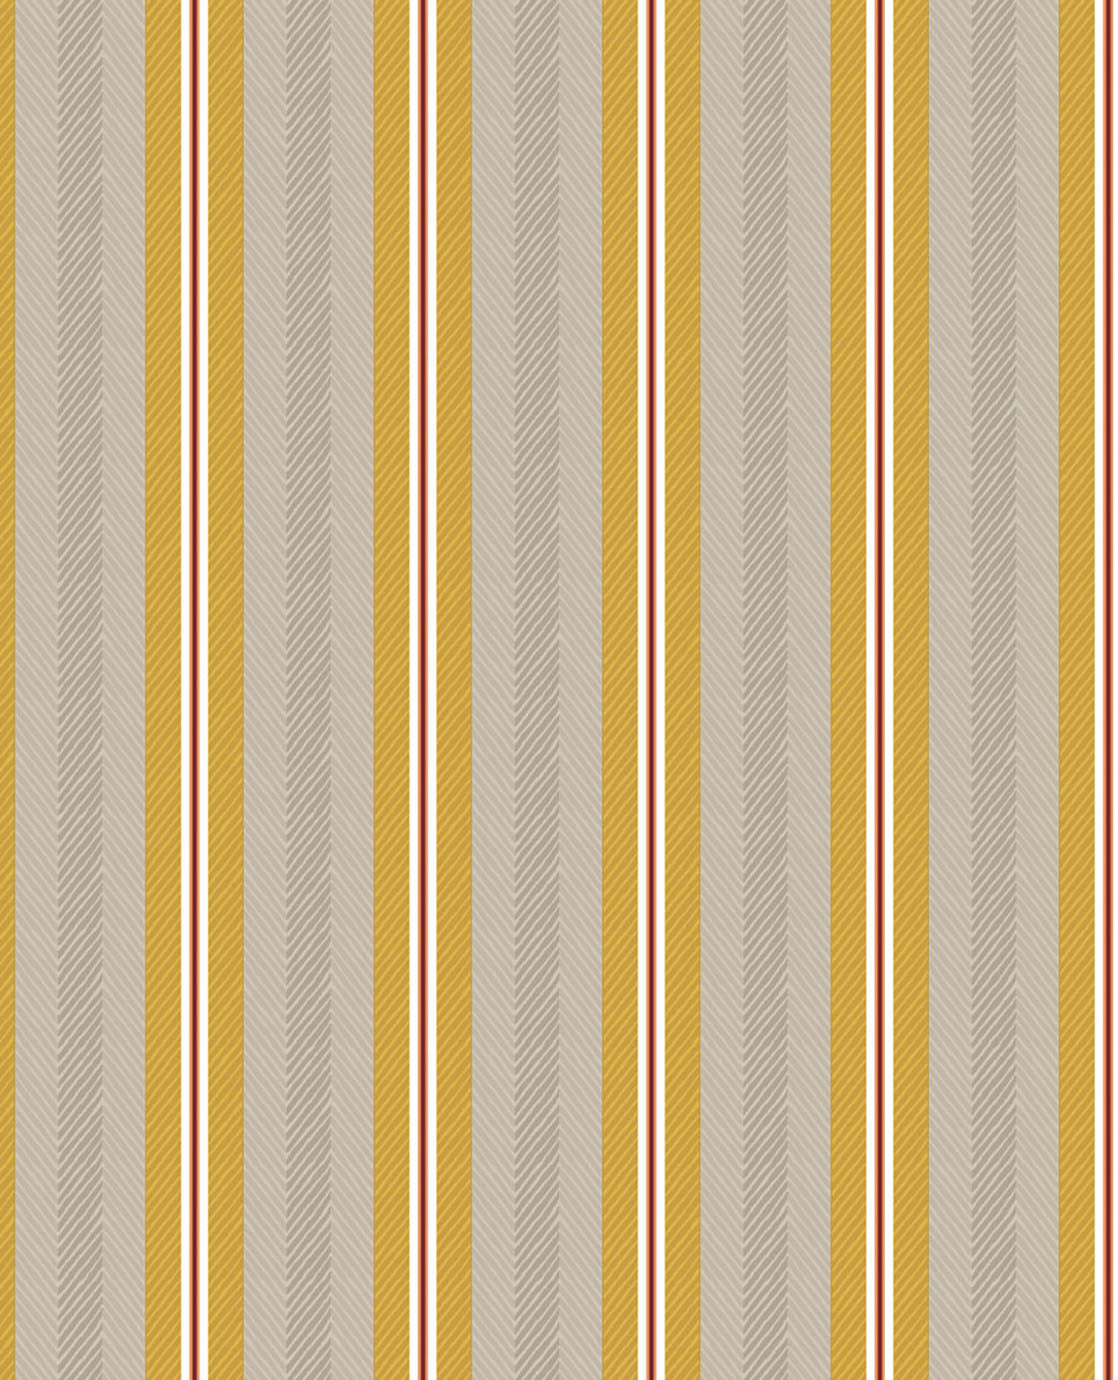 Pip Studio No 130 Wallpaper, Yellow / Multi Colour